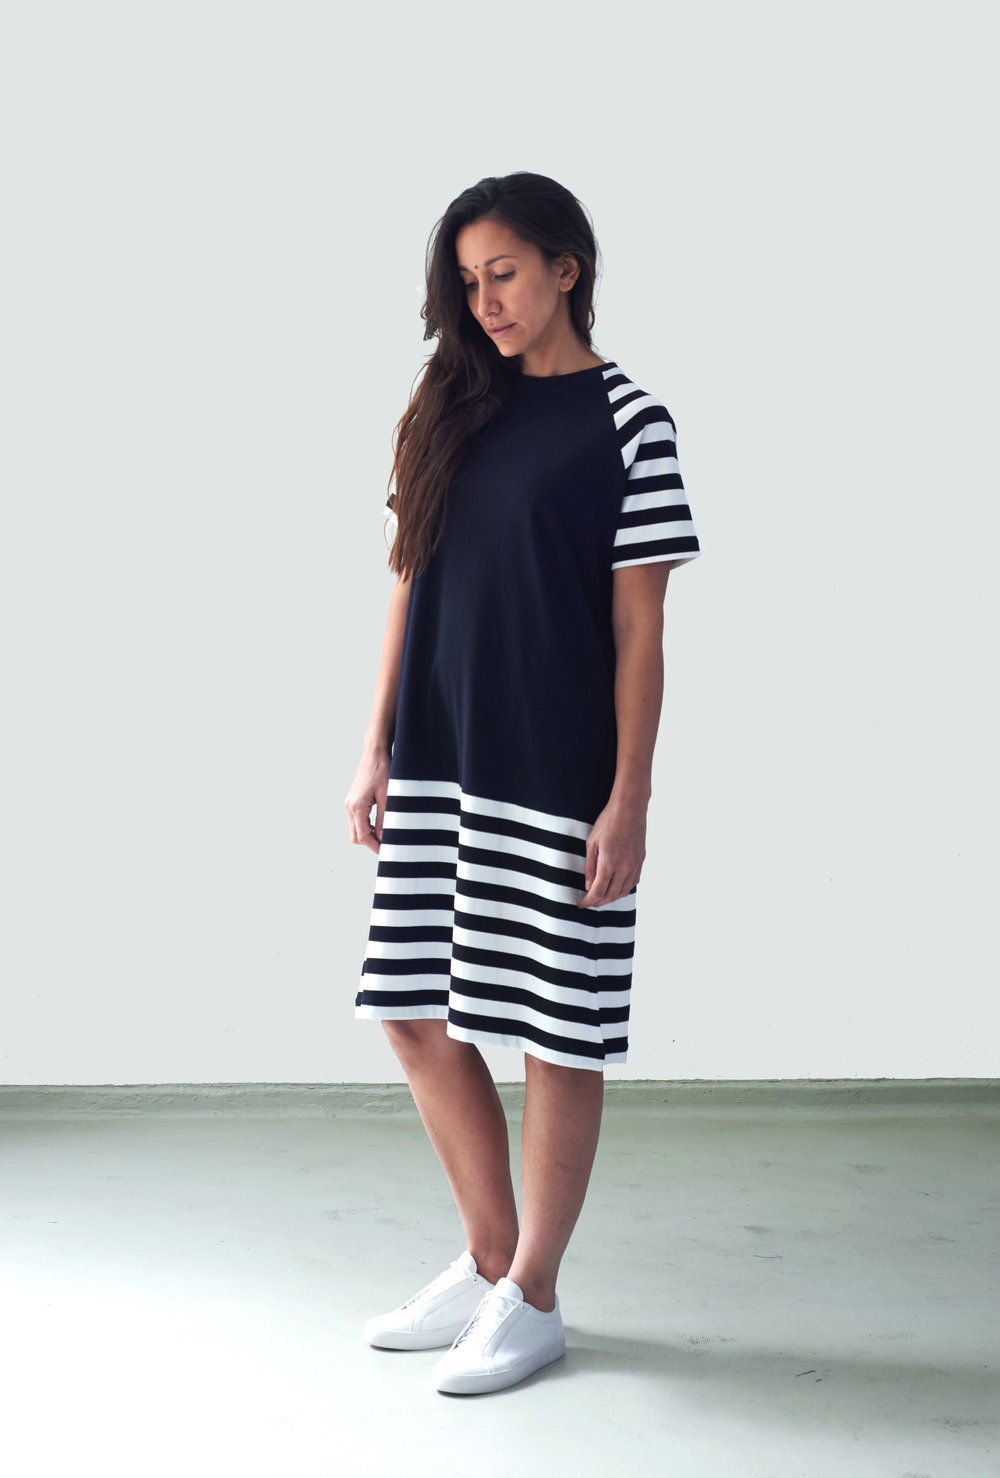 black stripe dress.jpg